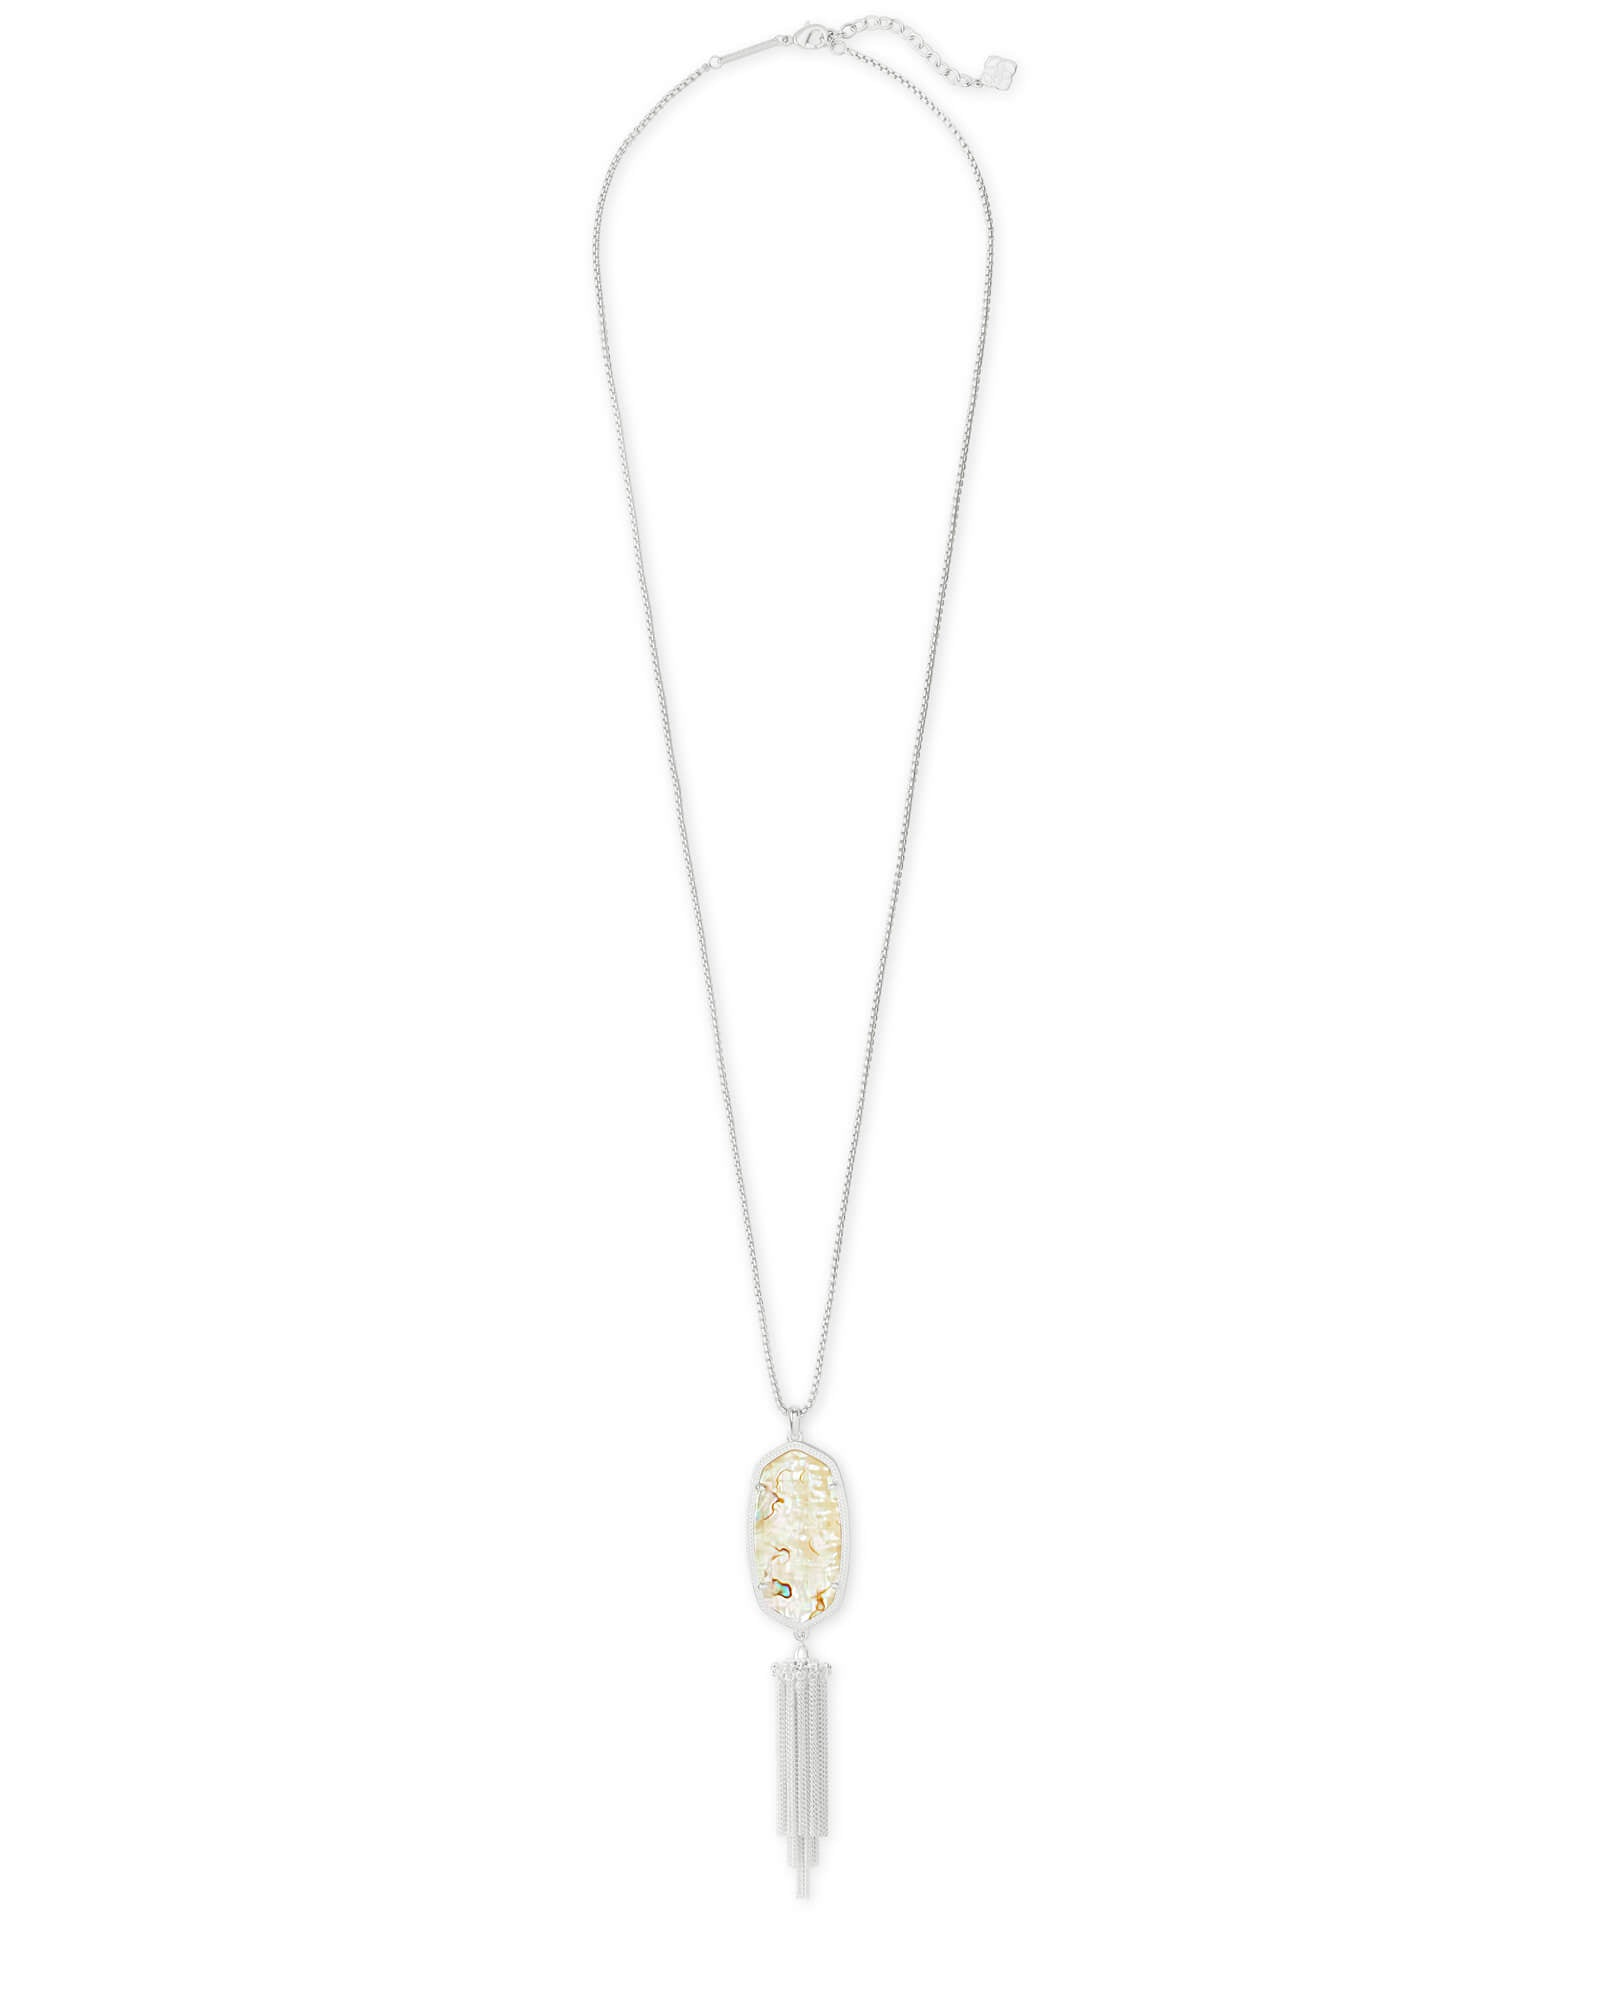 Kendra Scott Rayne Bright Silver Large Long Pendant Necklace In White Abalone